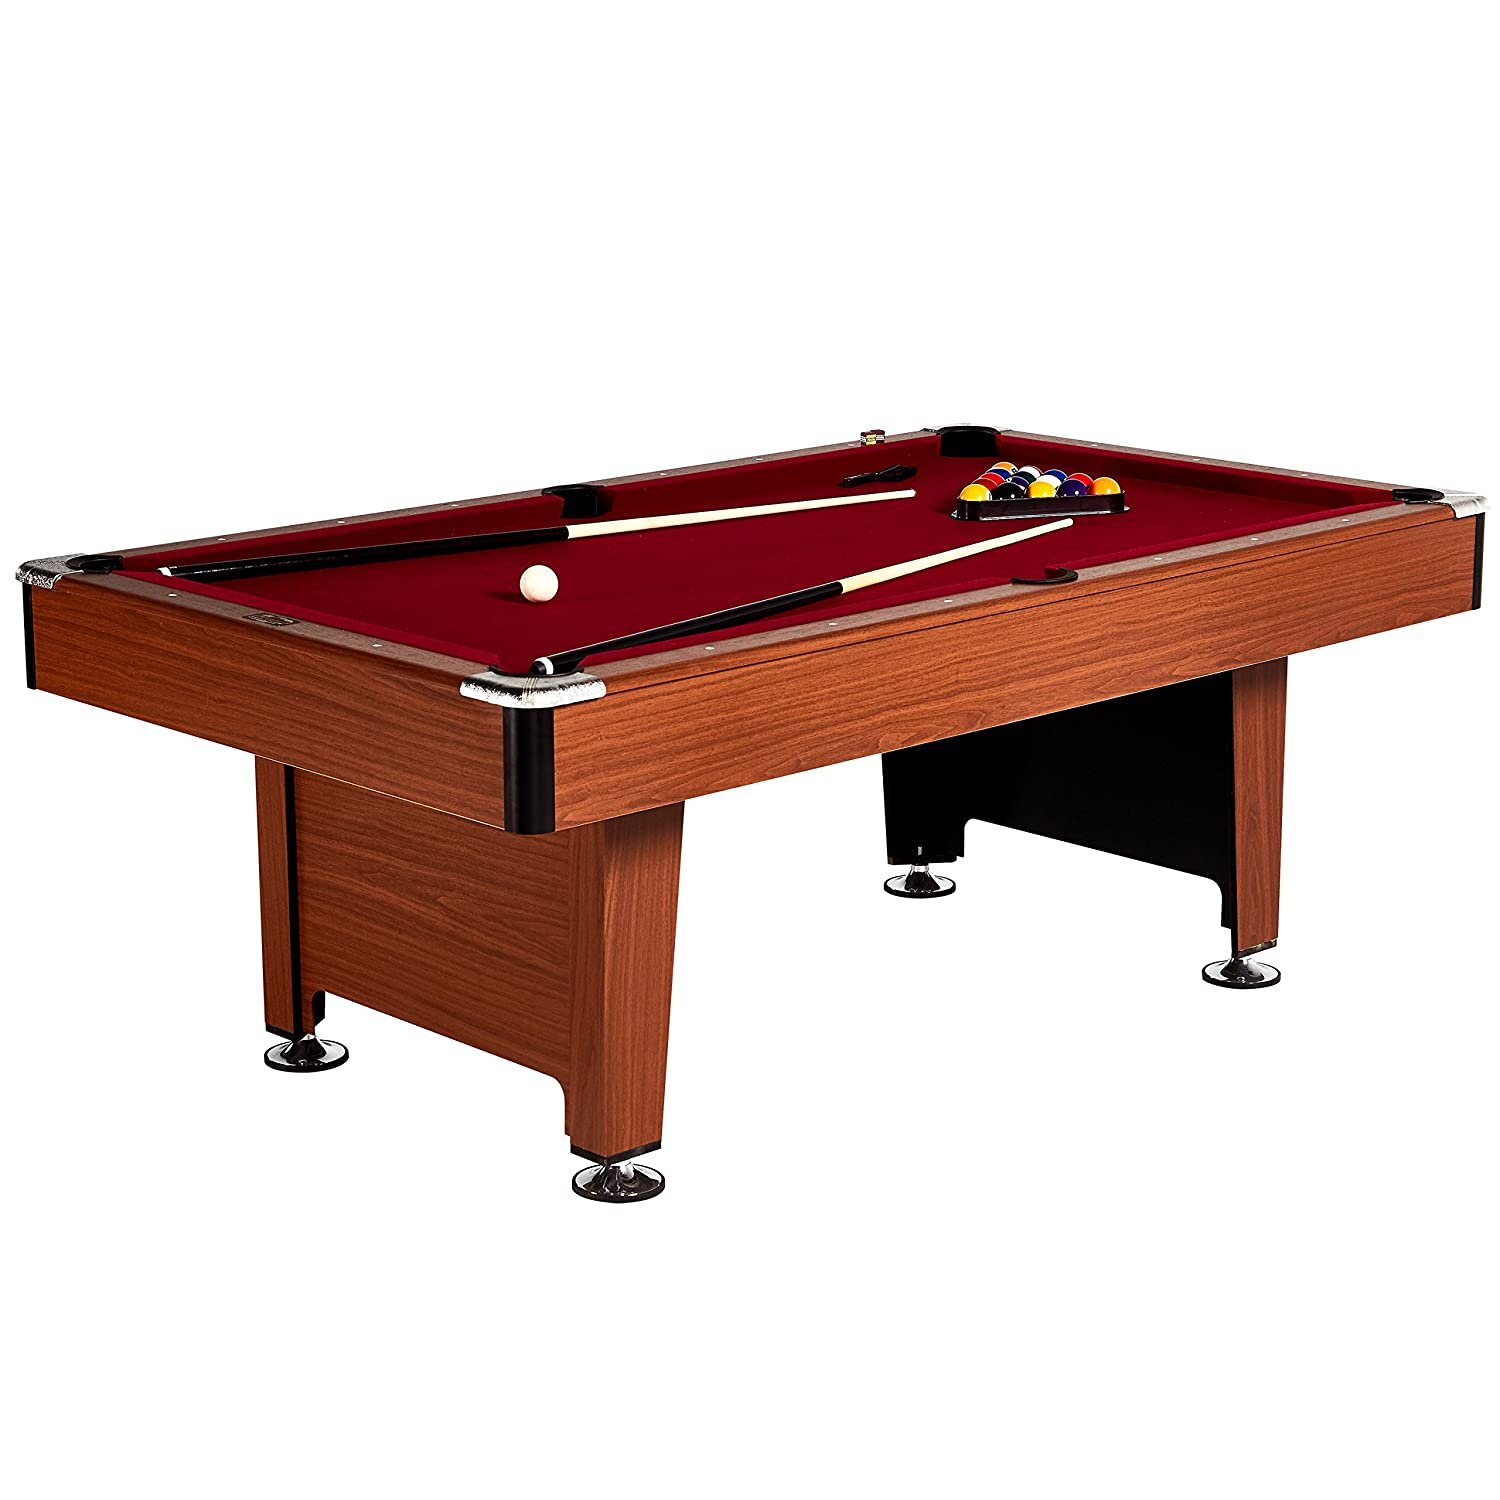 Brush and Chalk Balls Barrington Hawthorne 100 Billiard Table Set with Cues 23 Pieces Rack